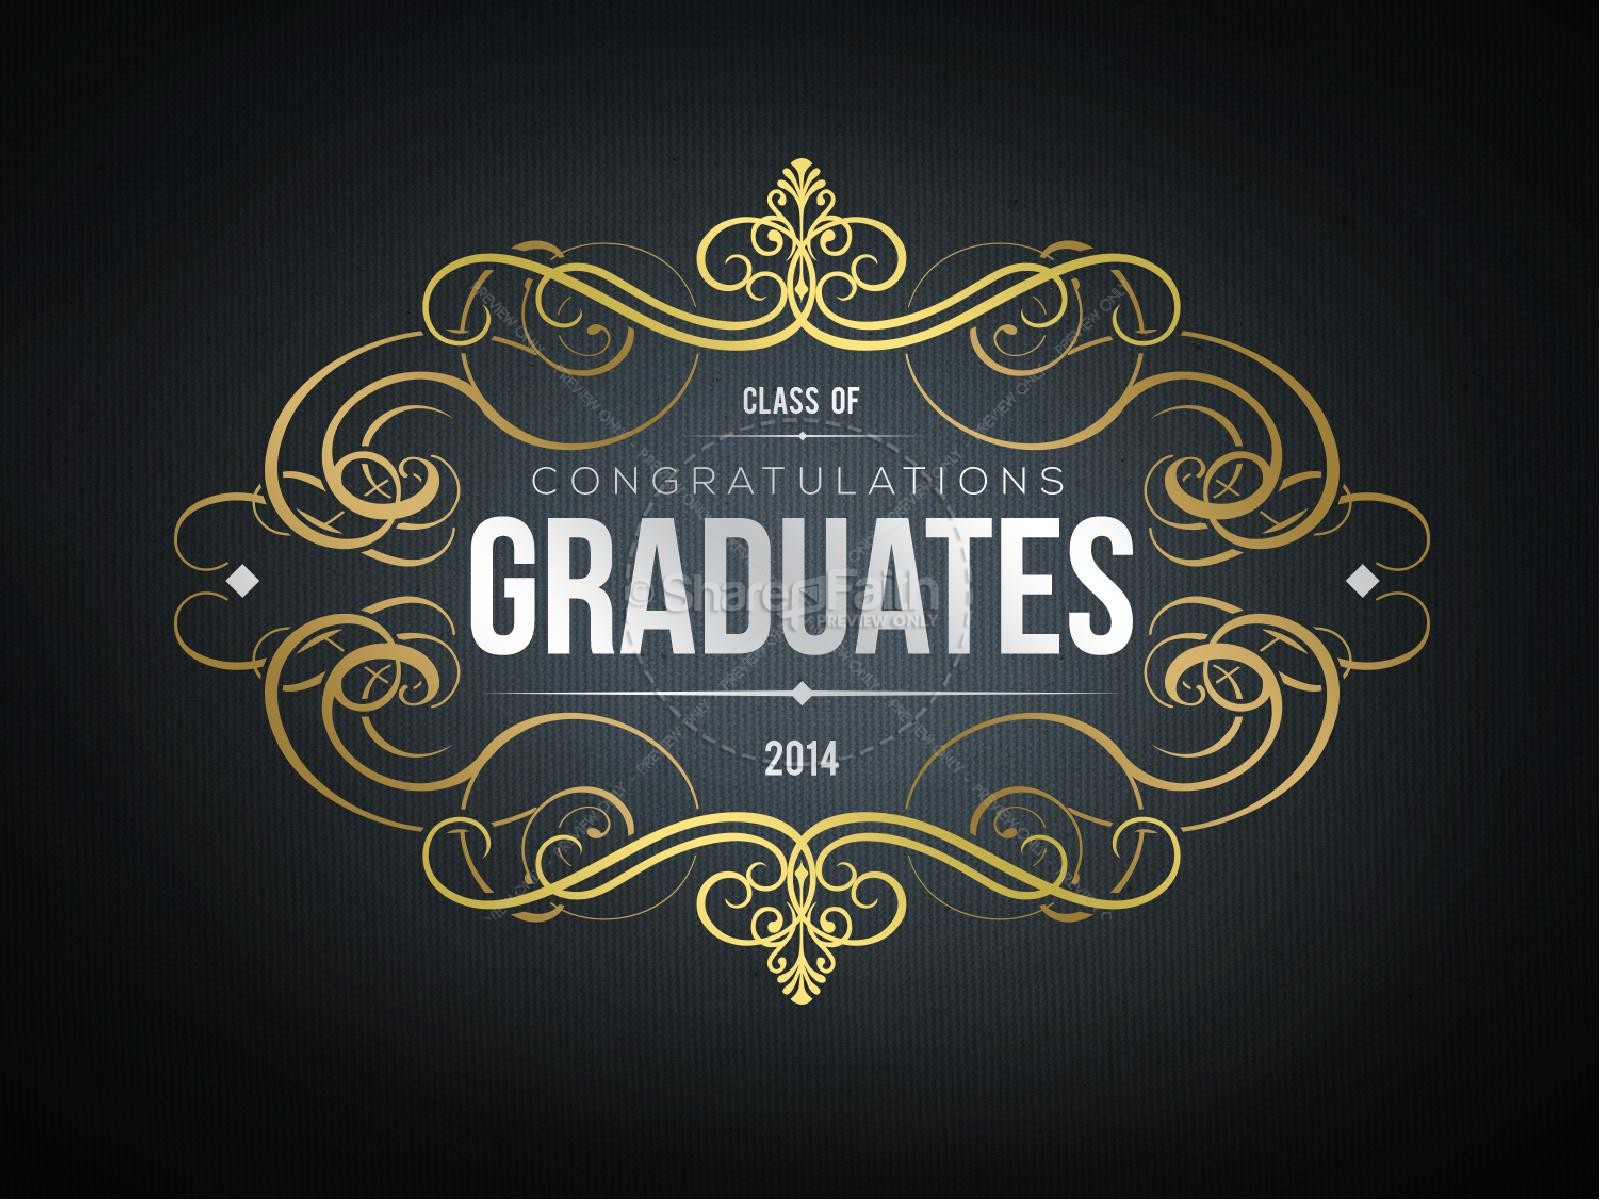 Graduation Party Slideshow PowerPoint Graphics | Graduation Day ...